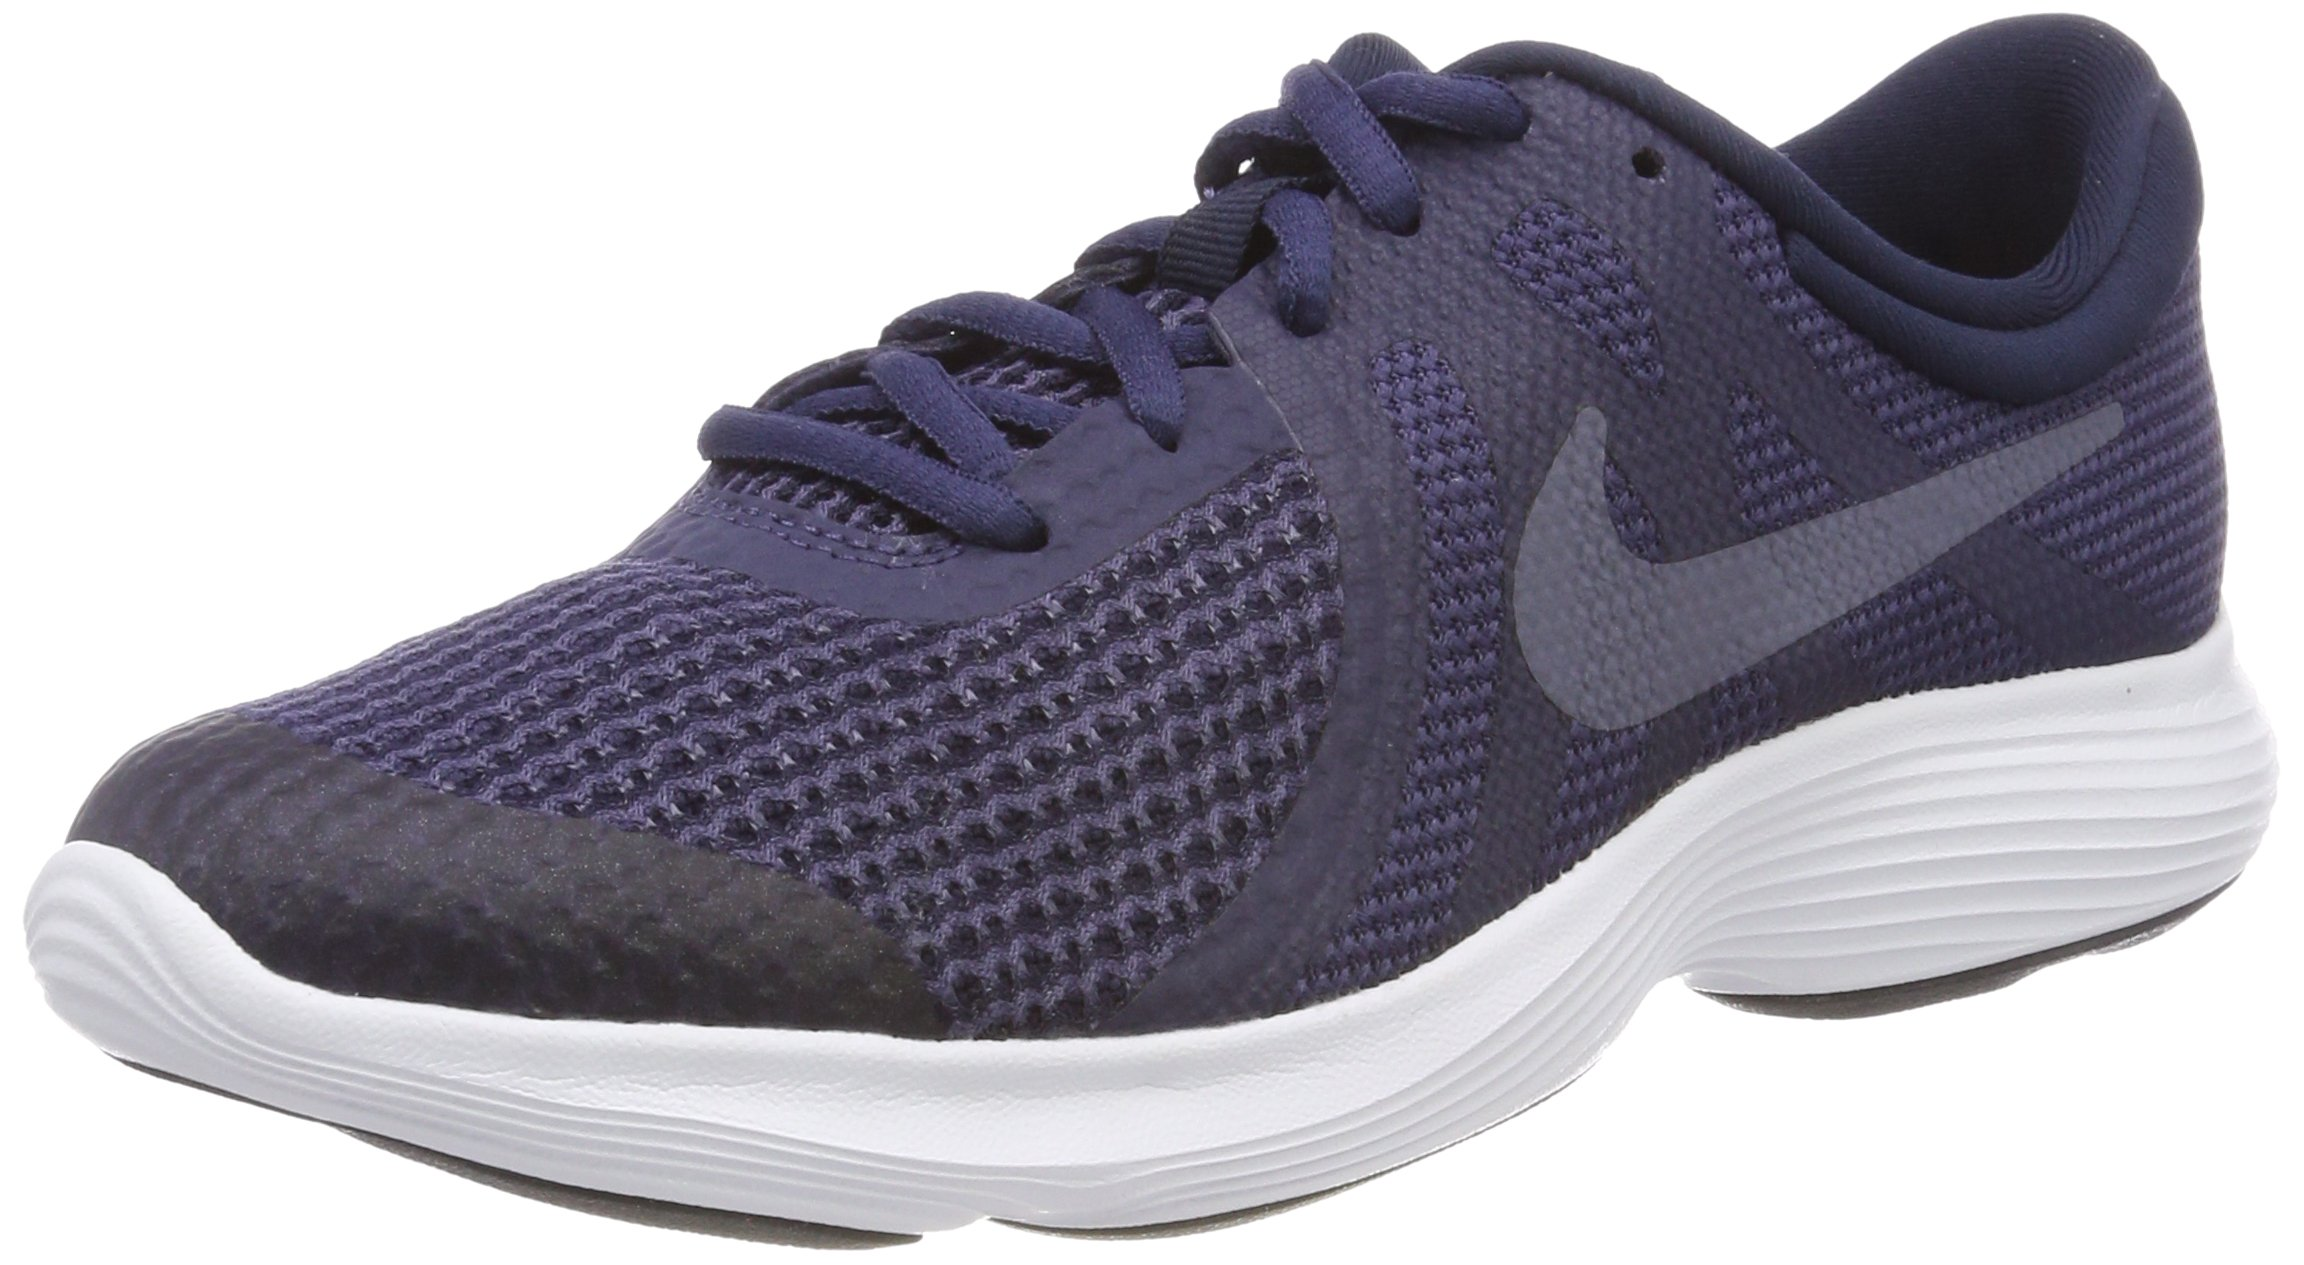 Nike Boys' Revolution 4 (GS) Running Shoe, Black/White-Anthracite, 4.5Y Youth US Big Kid by Nike